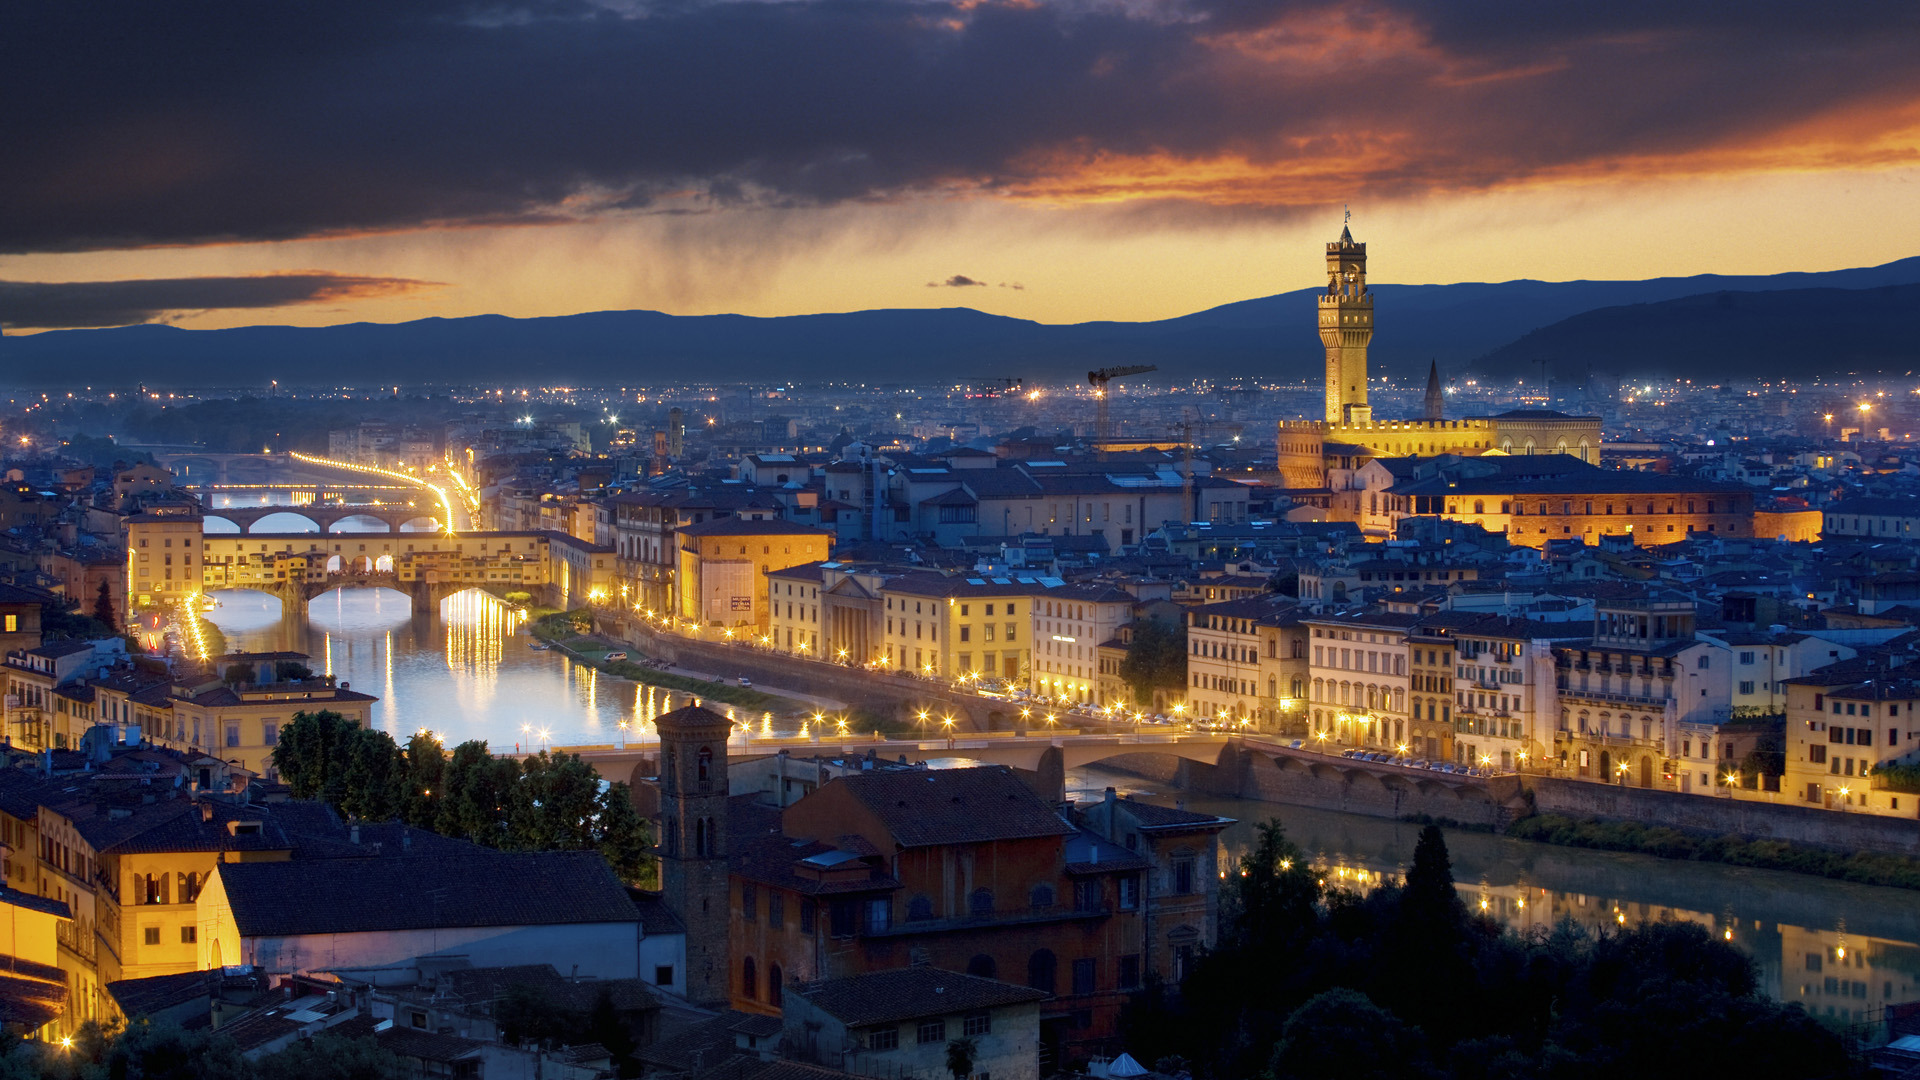 City Of Florence: Live The Magic Of Christmas In Florence With Emma Villas